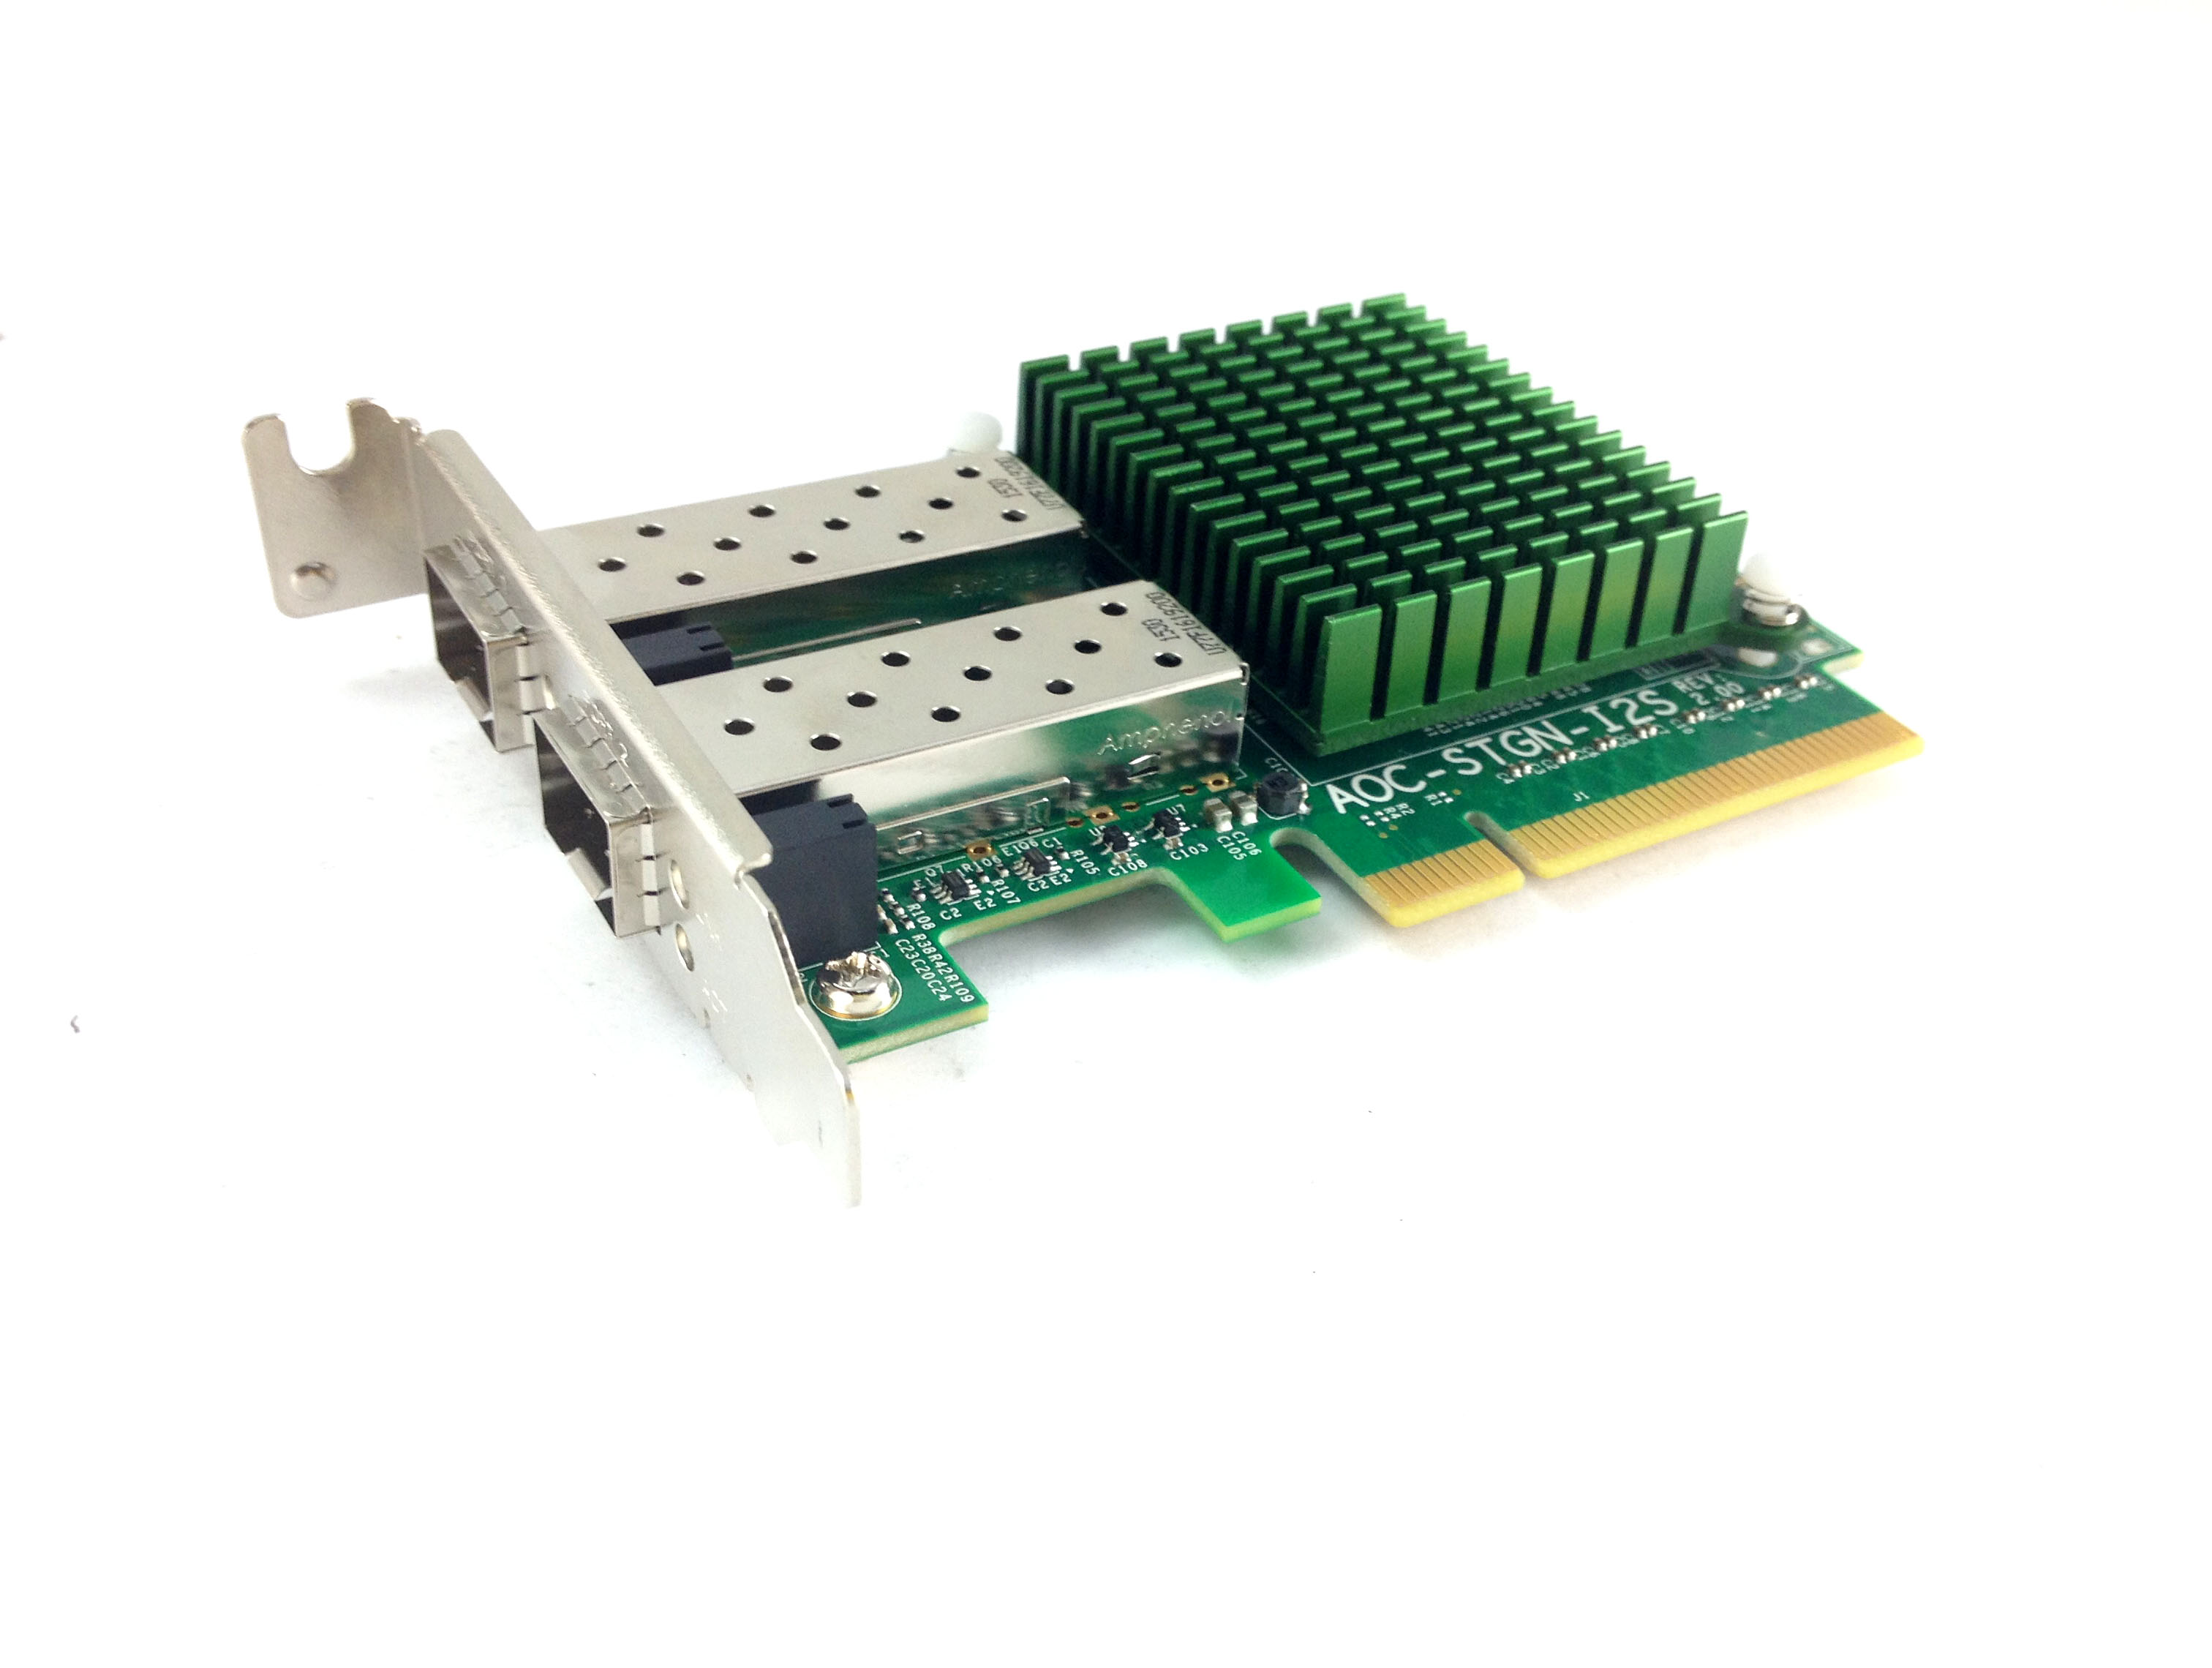 AOC-STGN-I2S Supermicro Rev 2 0 10GbE Dual Port SFP+ Network Card